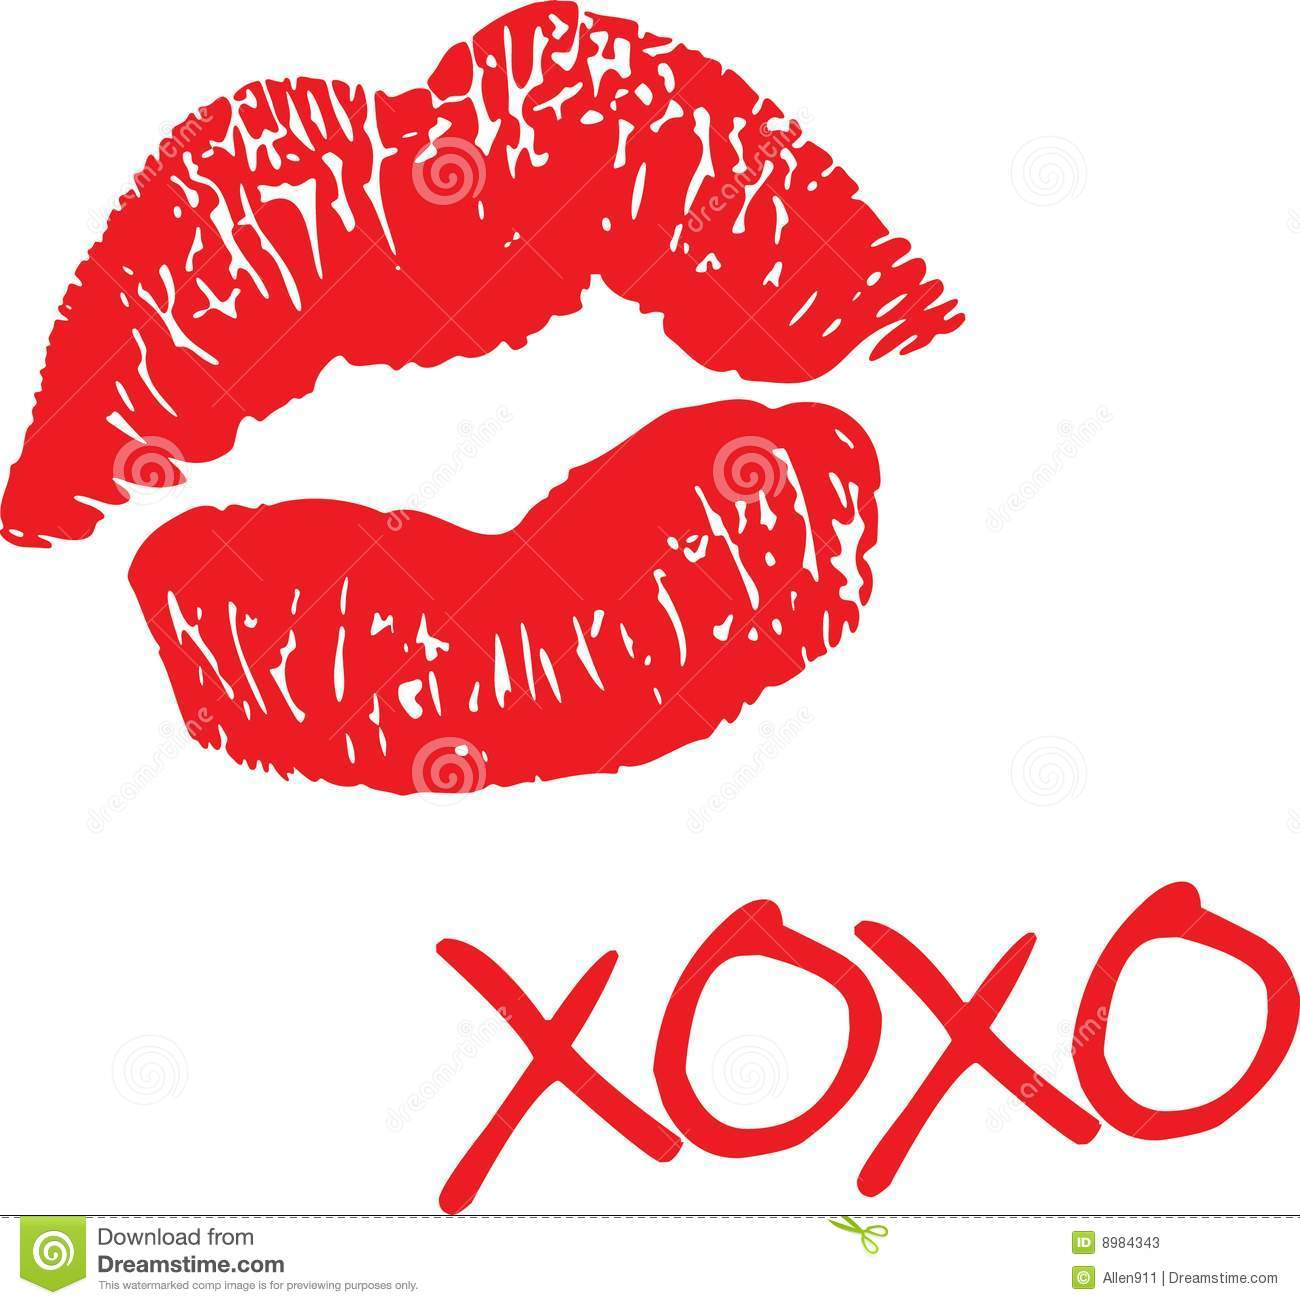 Love and kisses clipart